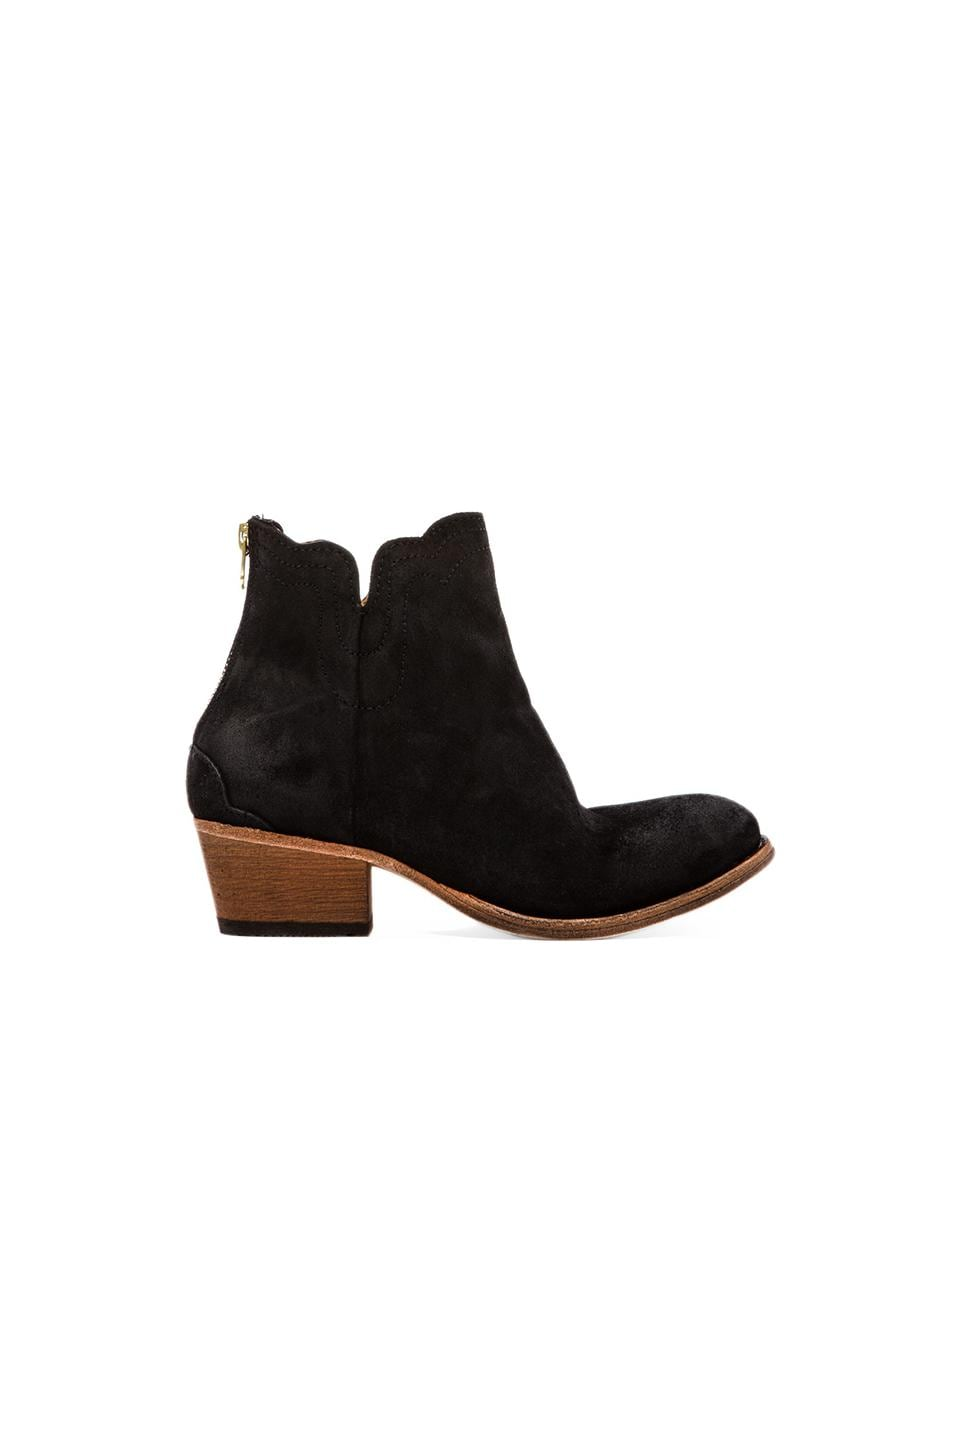 H by Hudson Mistral Bootie in Suede Black